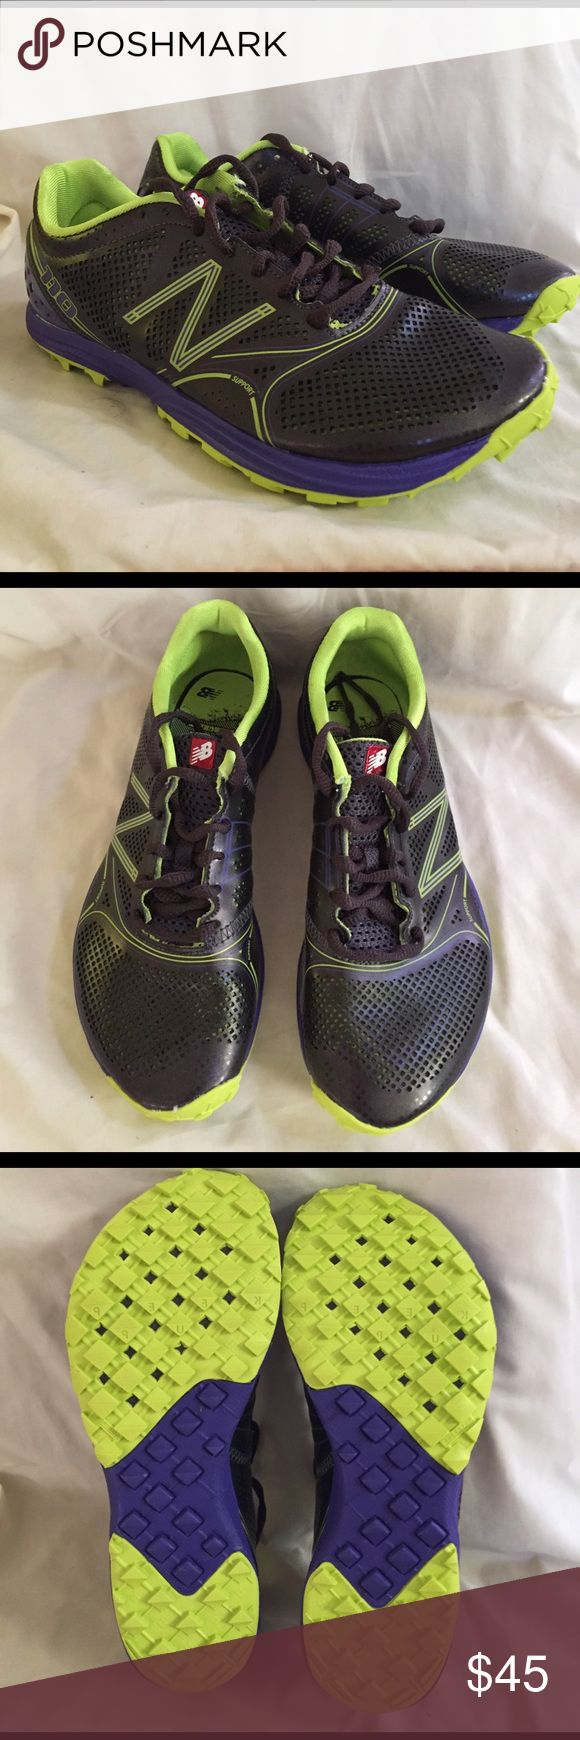 New Balance WT110BE minimalist trail running shoes Brand new in box.  Black/Blue-violet/neon yellow. New Balance Shoes Athletic Shoes